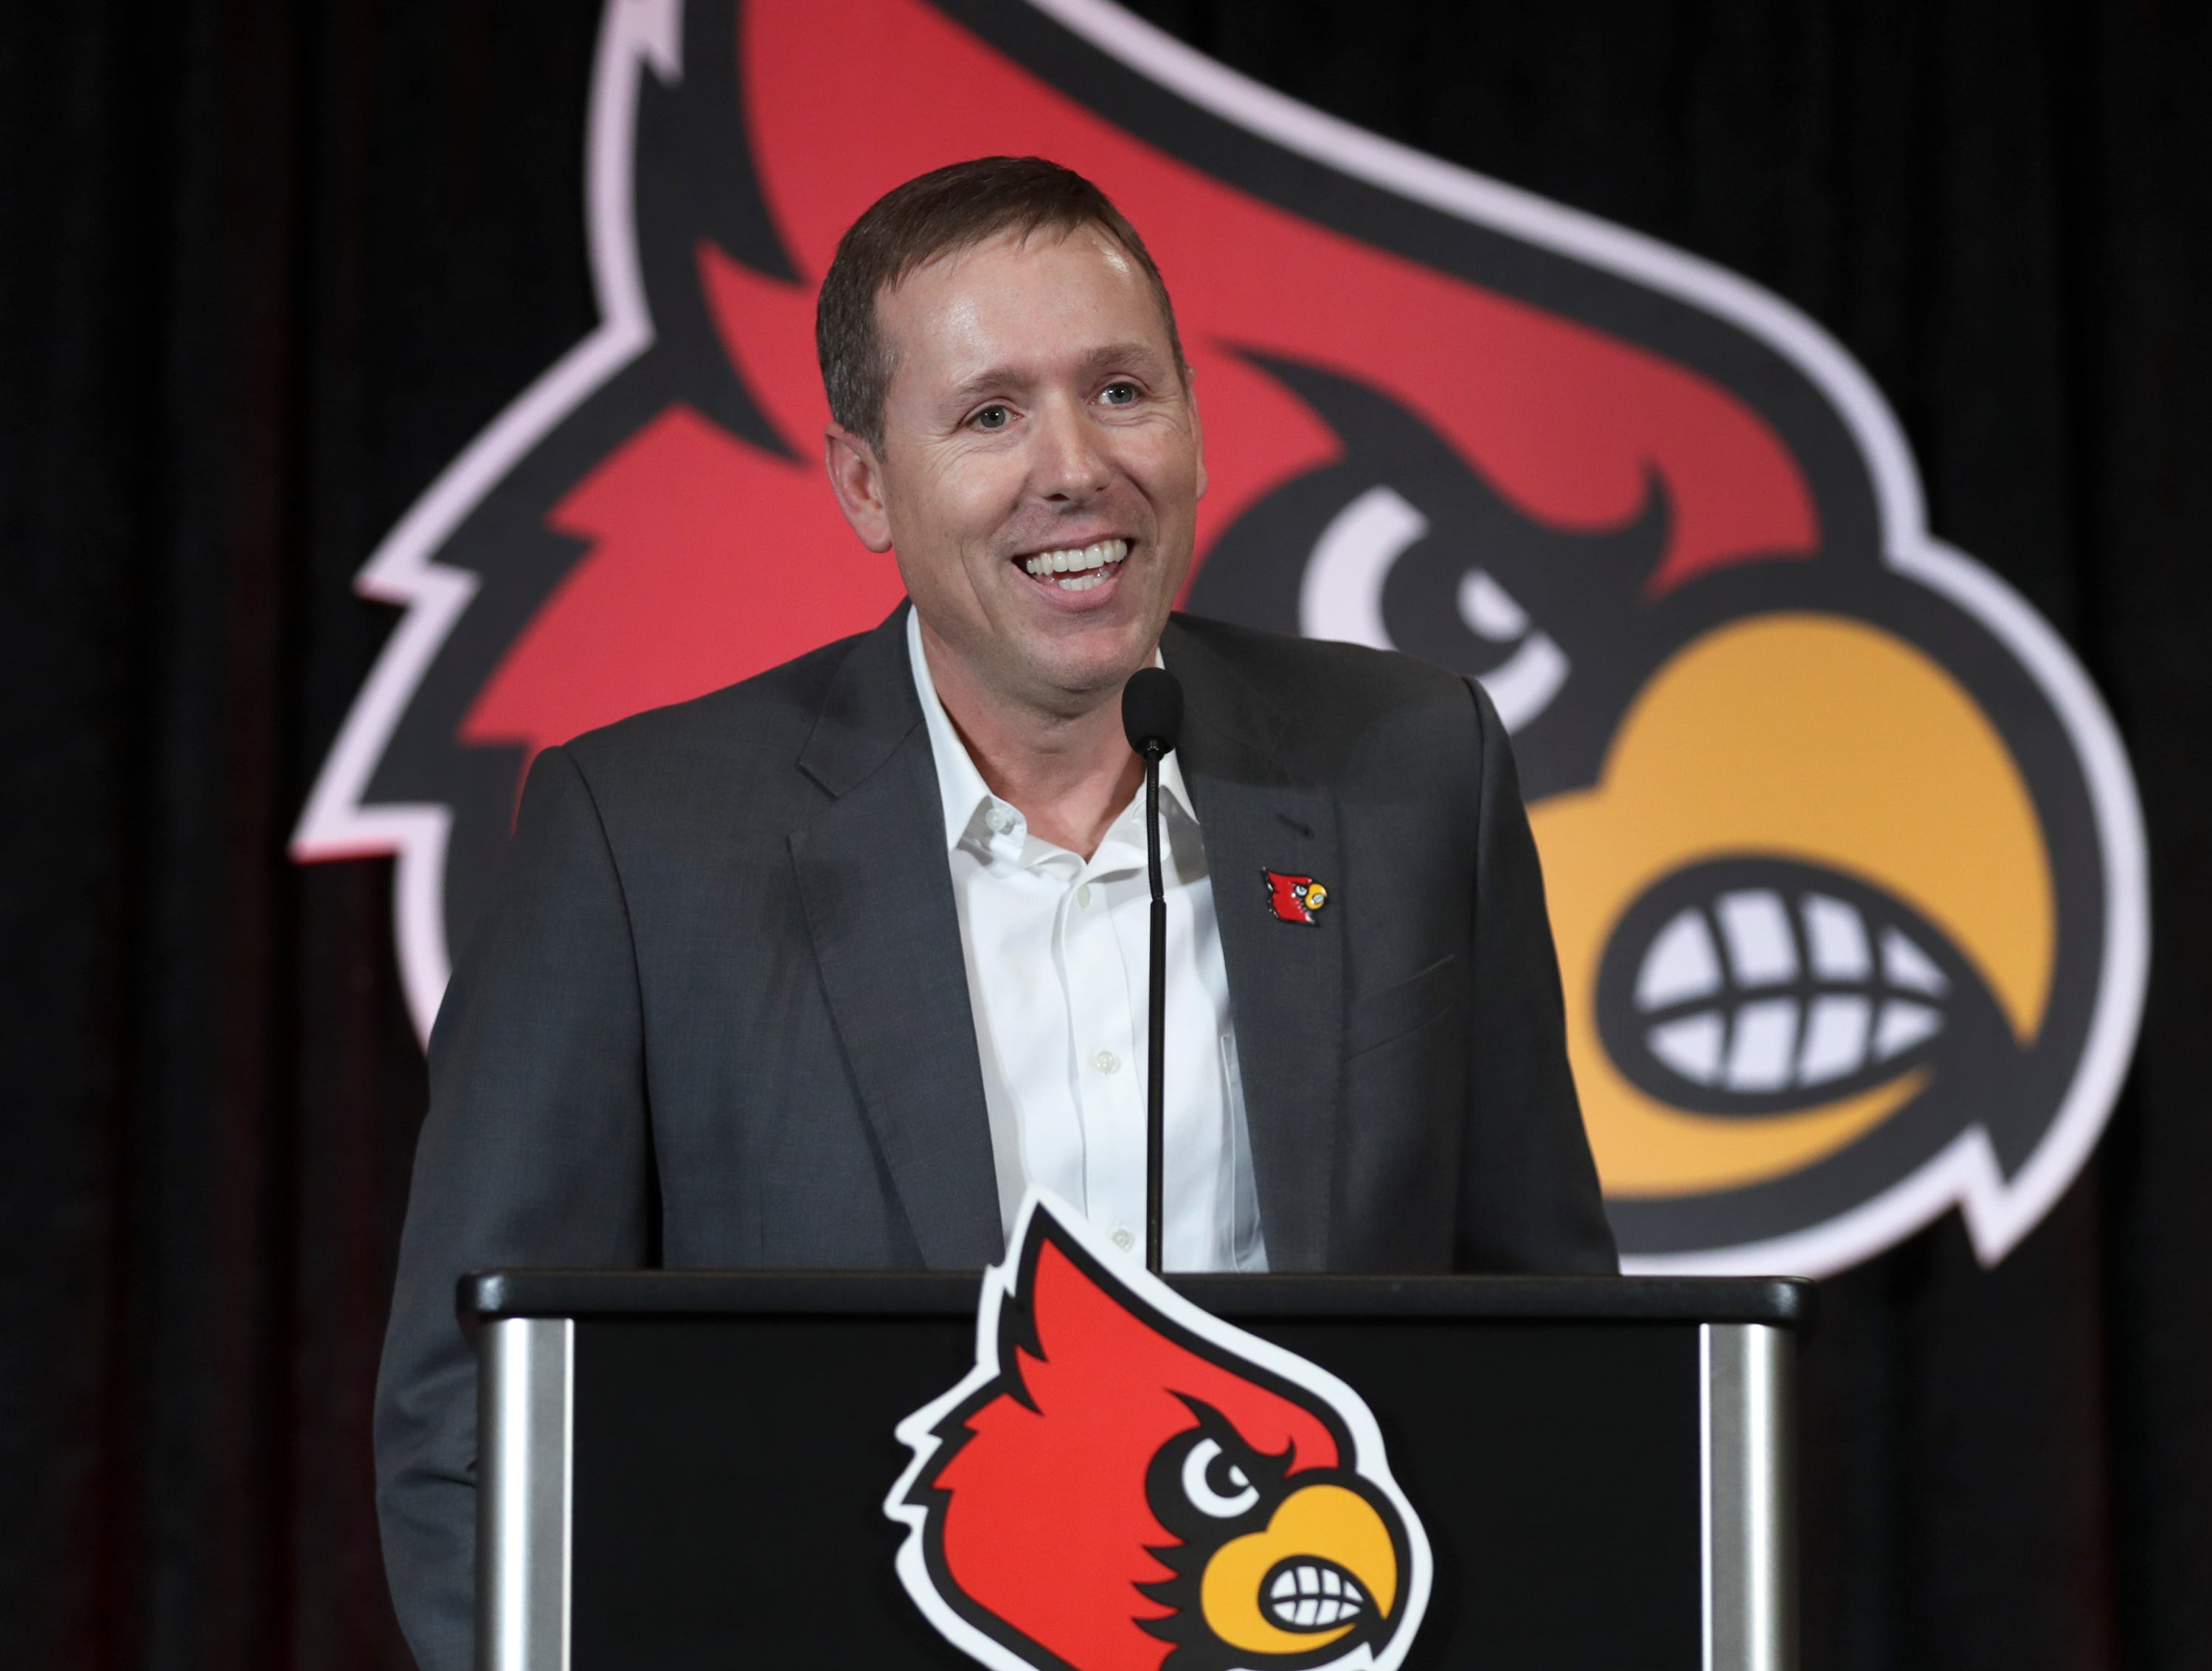 Coach Scott Satterfield speaks after being named coach at Louisville on Tuesday evening.